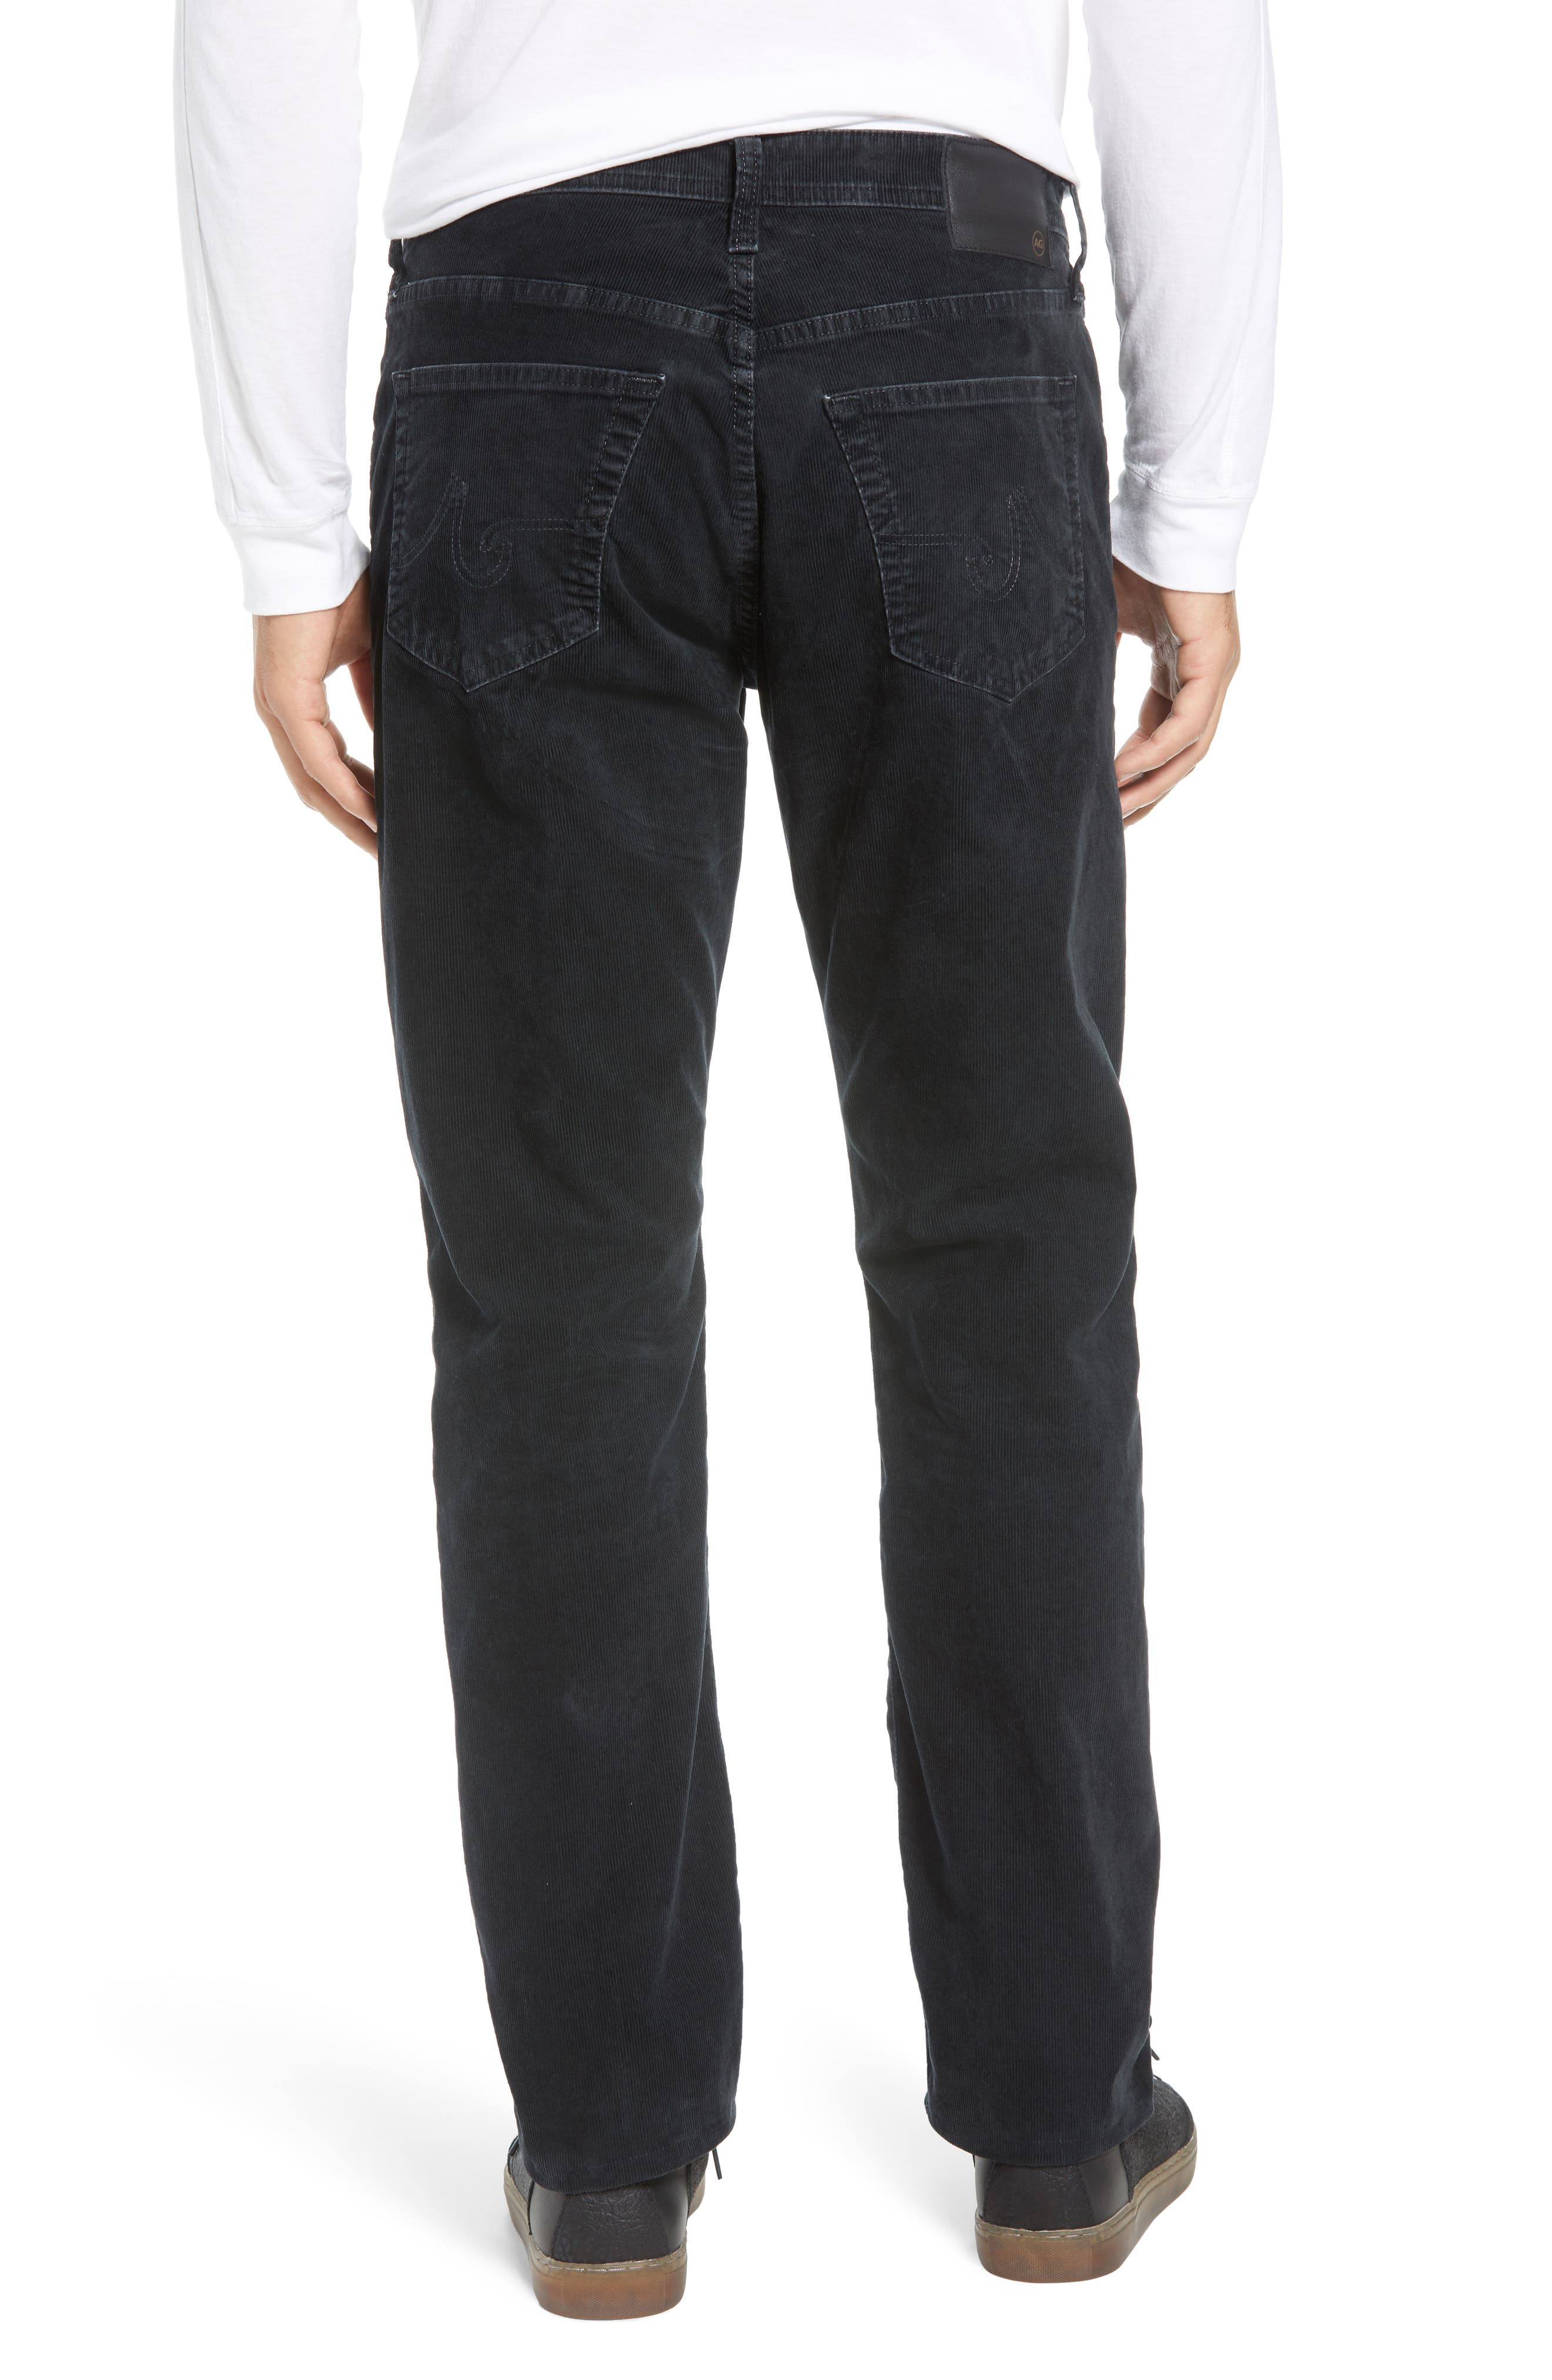 Everett Straight Leg Corduroy Pants,                             Alternate thumbnail 2, color,                             SULFUR ASH BLACK